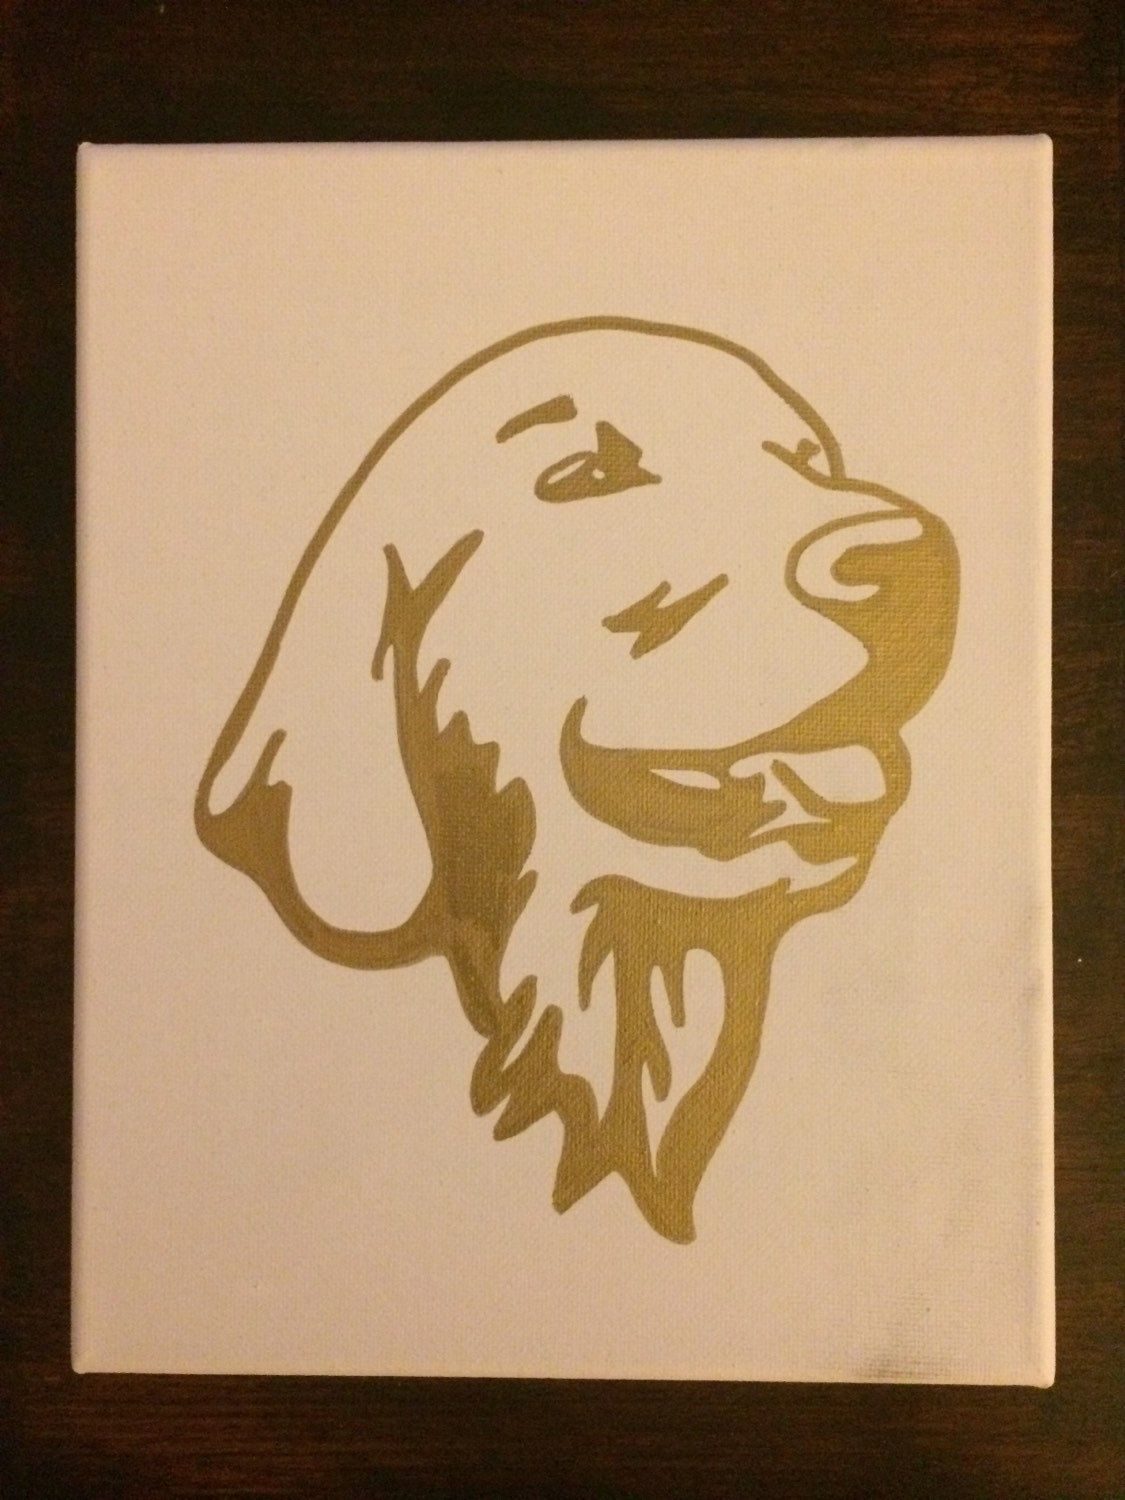 Golden Retriever, Dog, Canvas Painting, Home Decor, Wall Art by ...